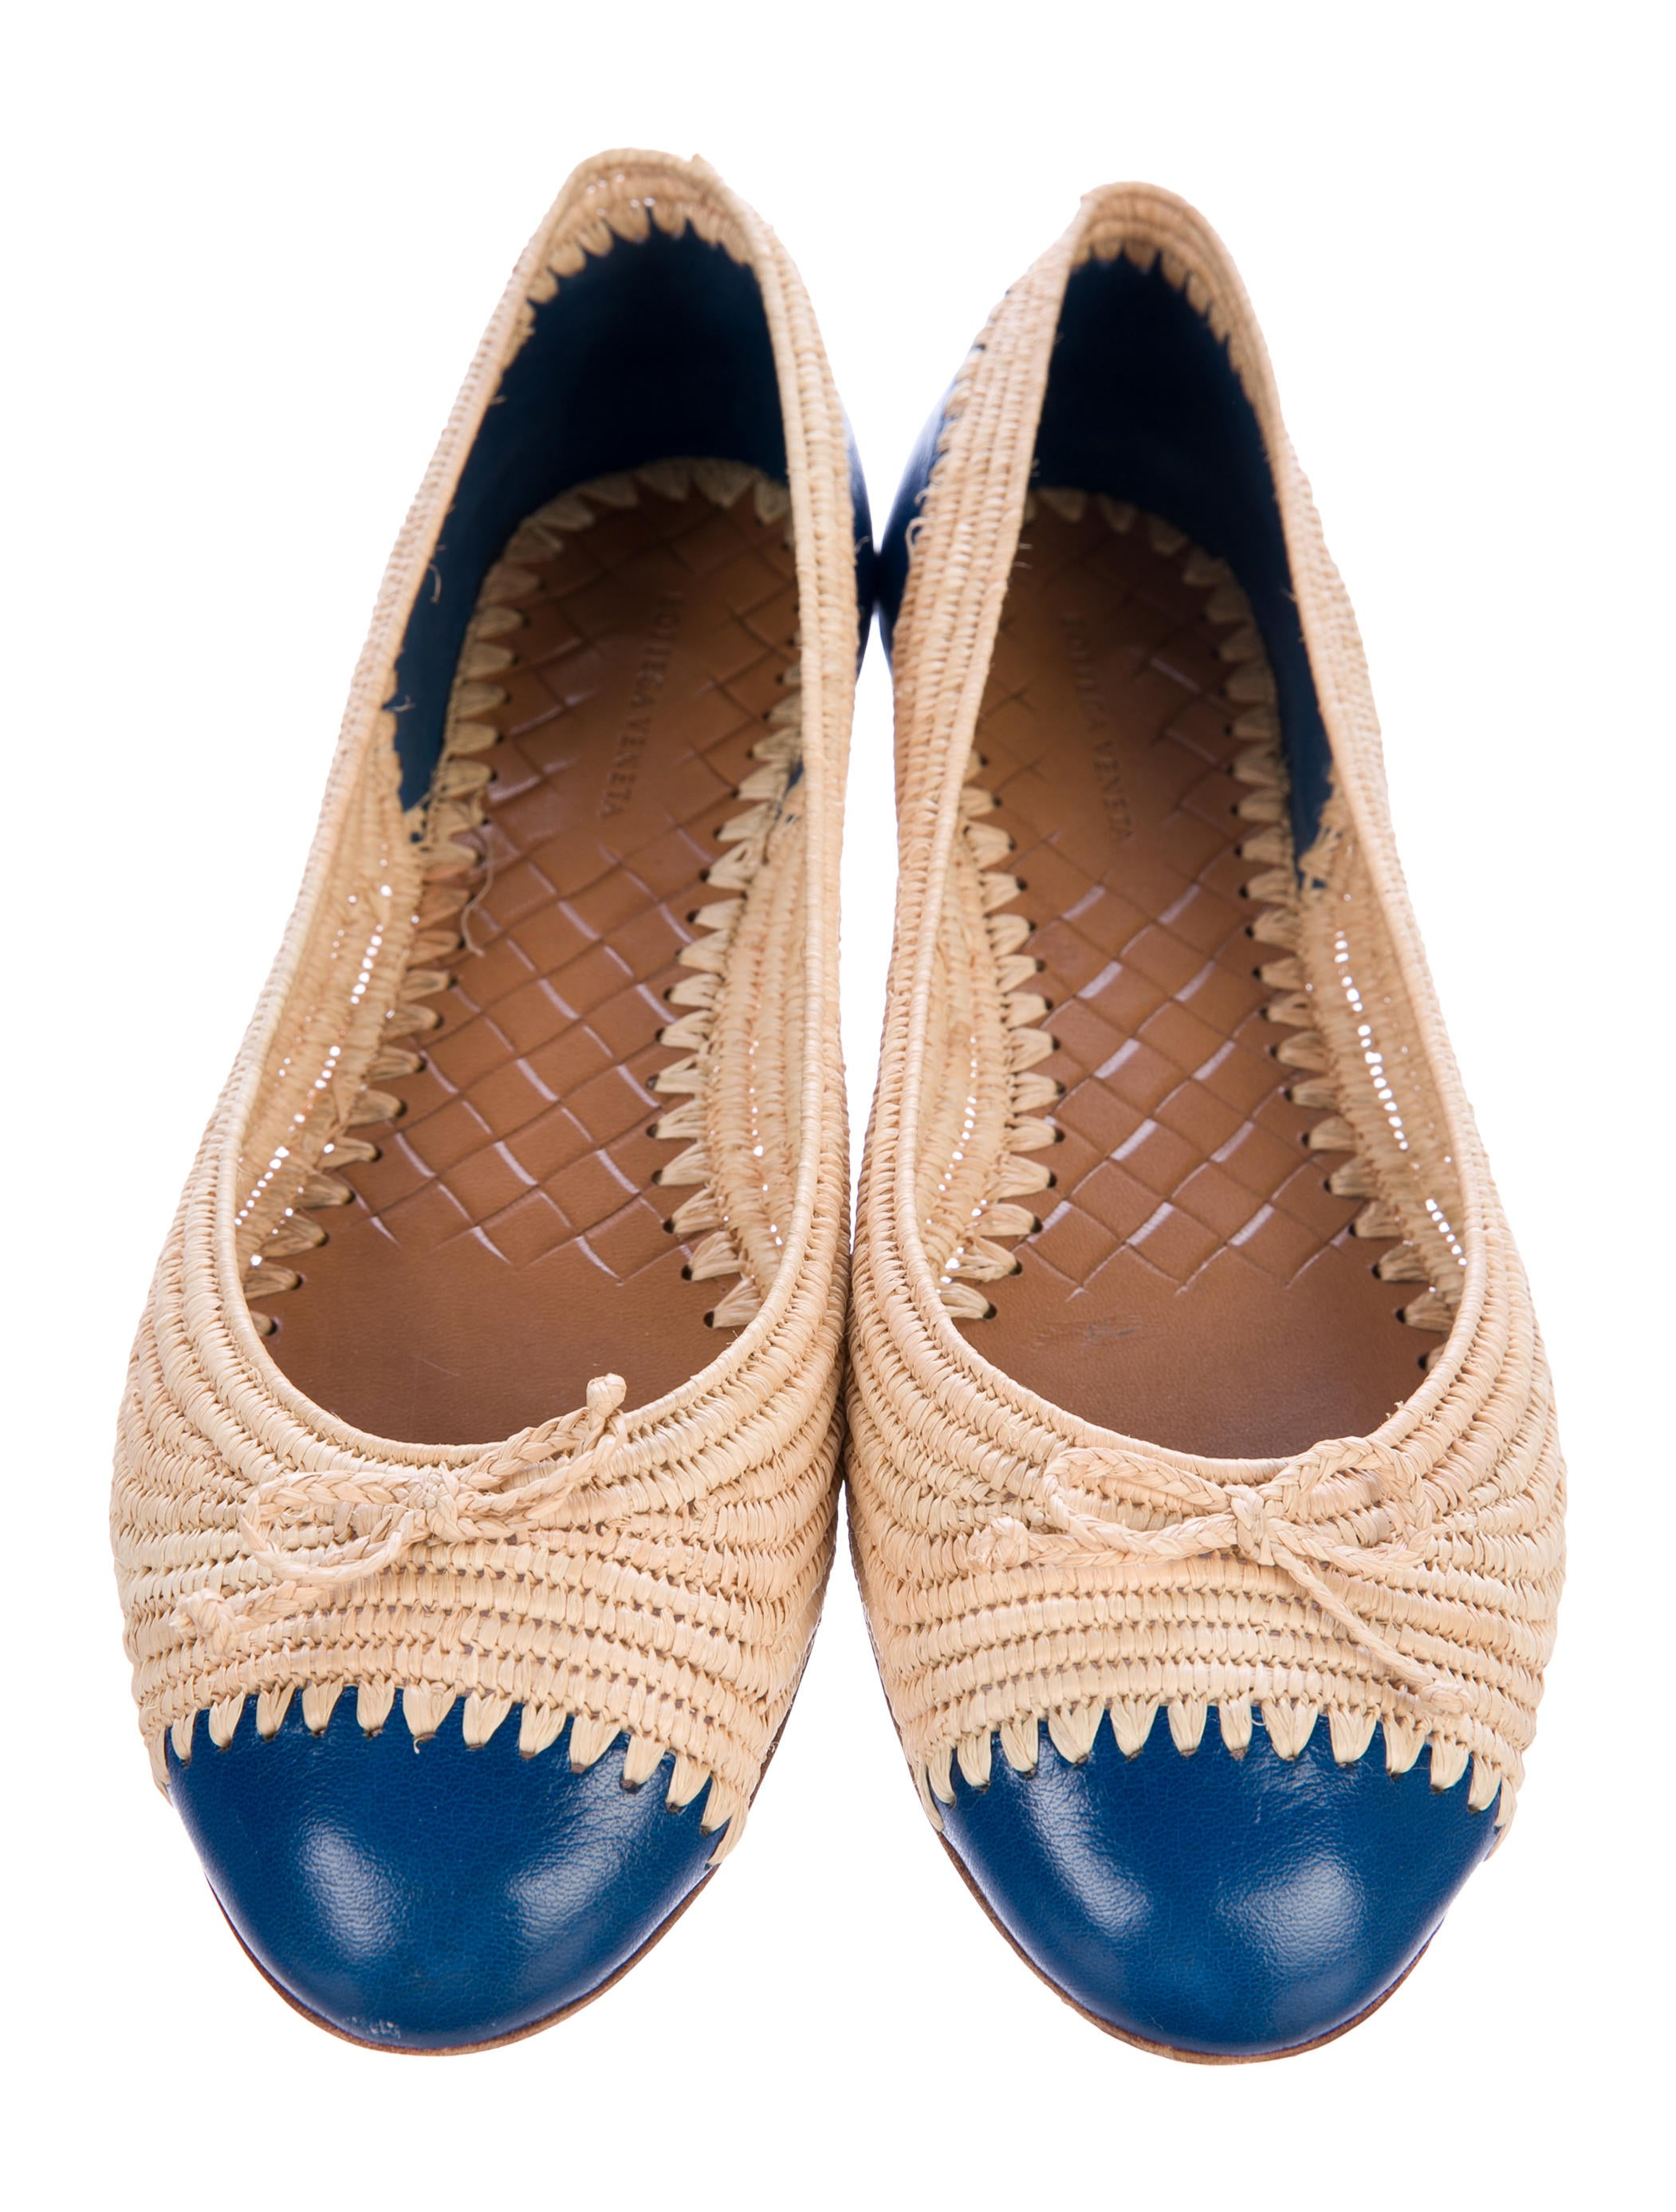 buy online with paypal with credit card online Bottega Veneta Straw Cap-Toe Flats perfect for sale wide range of cheap online discount shop for bGmdrpNhKR